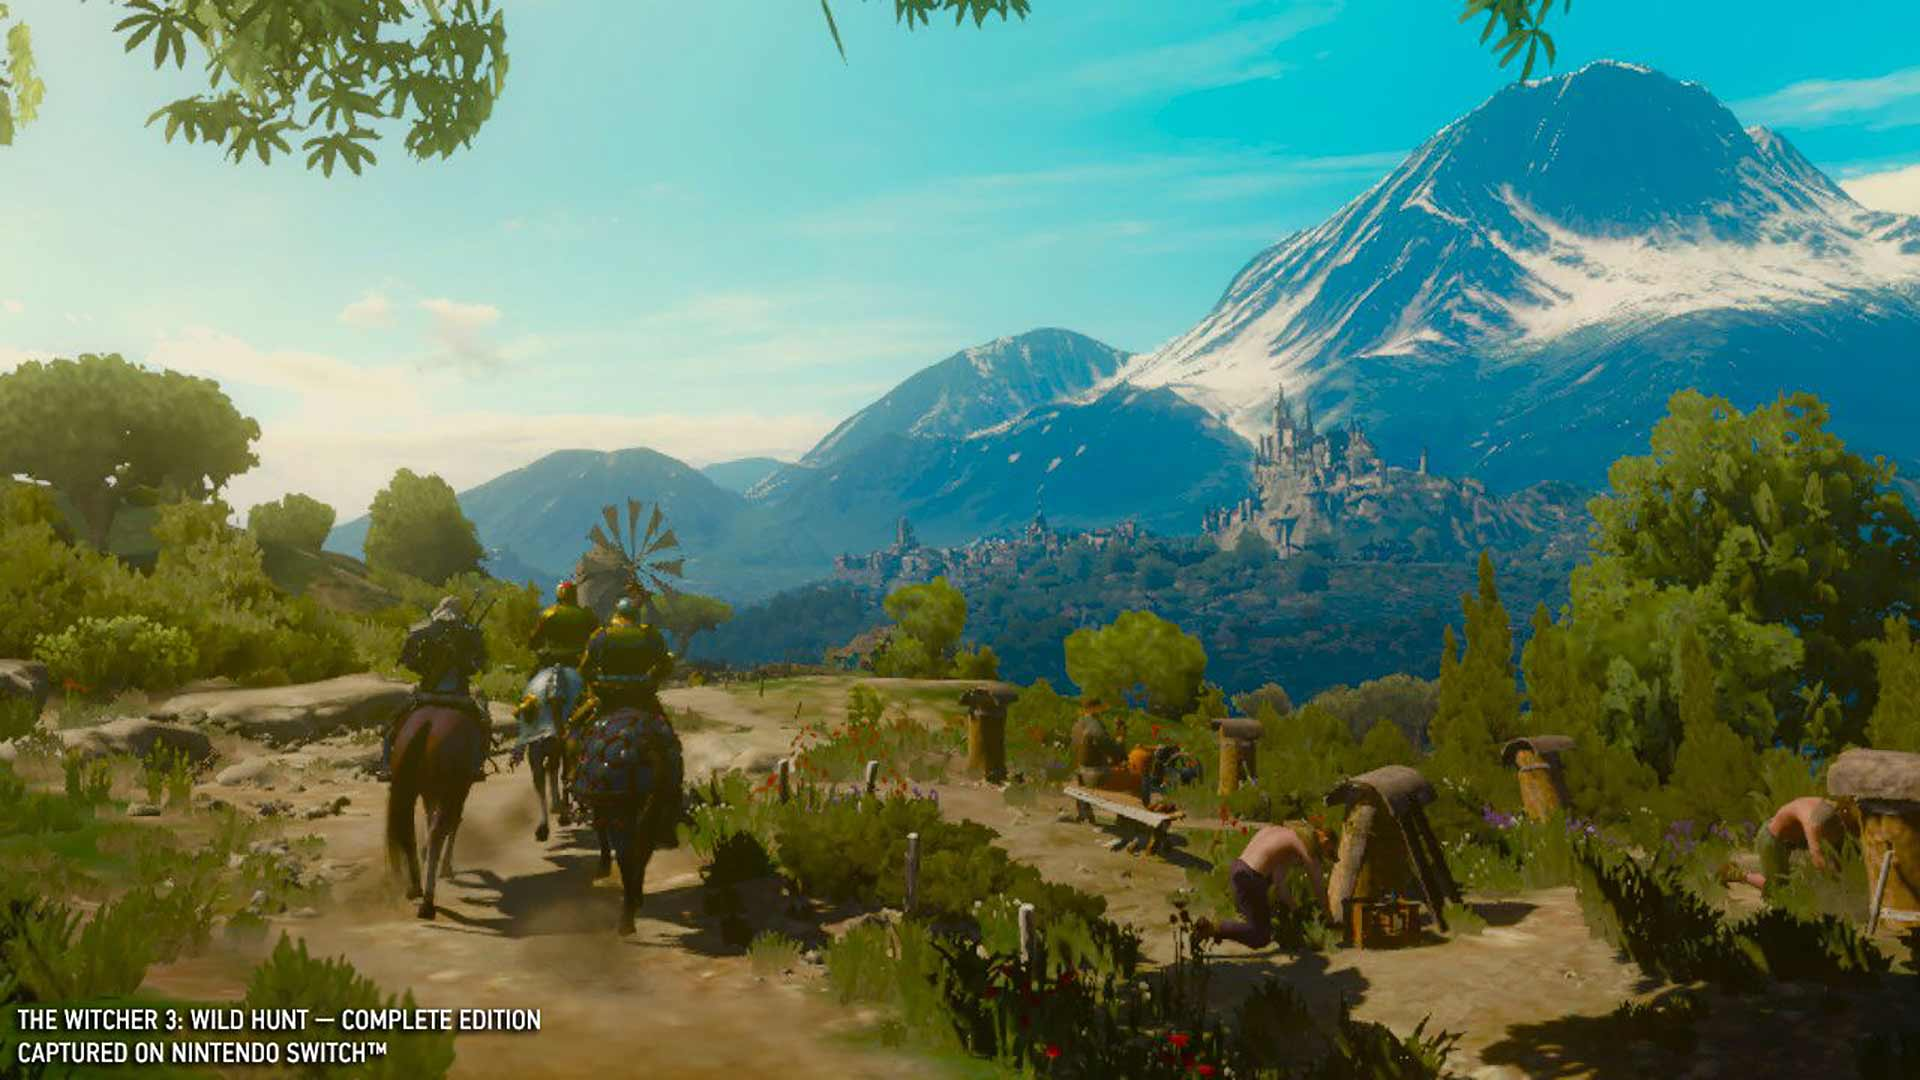 The Witcher 3 field